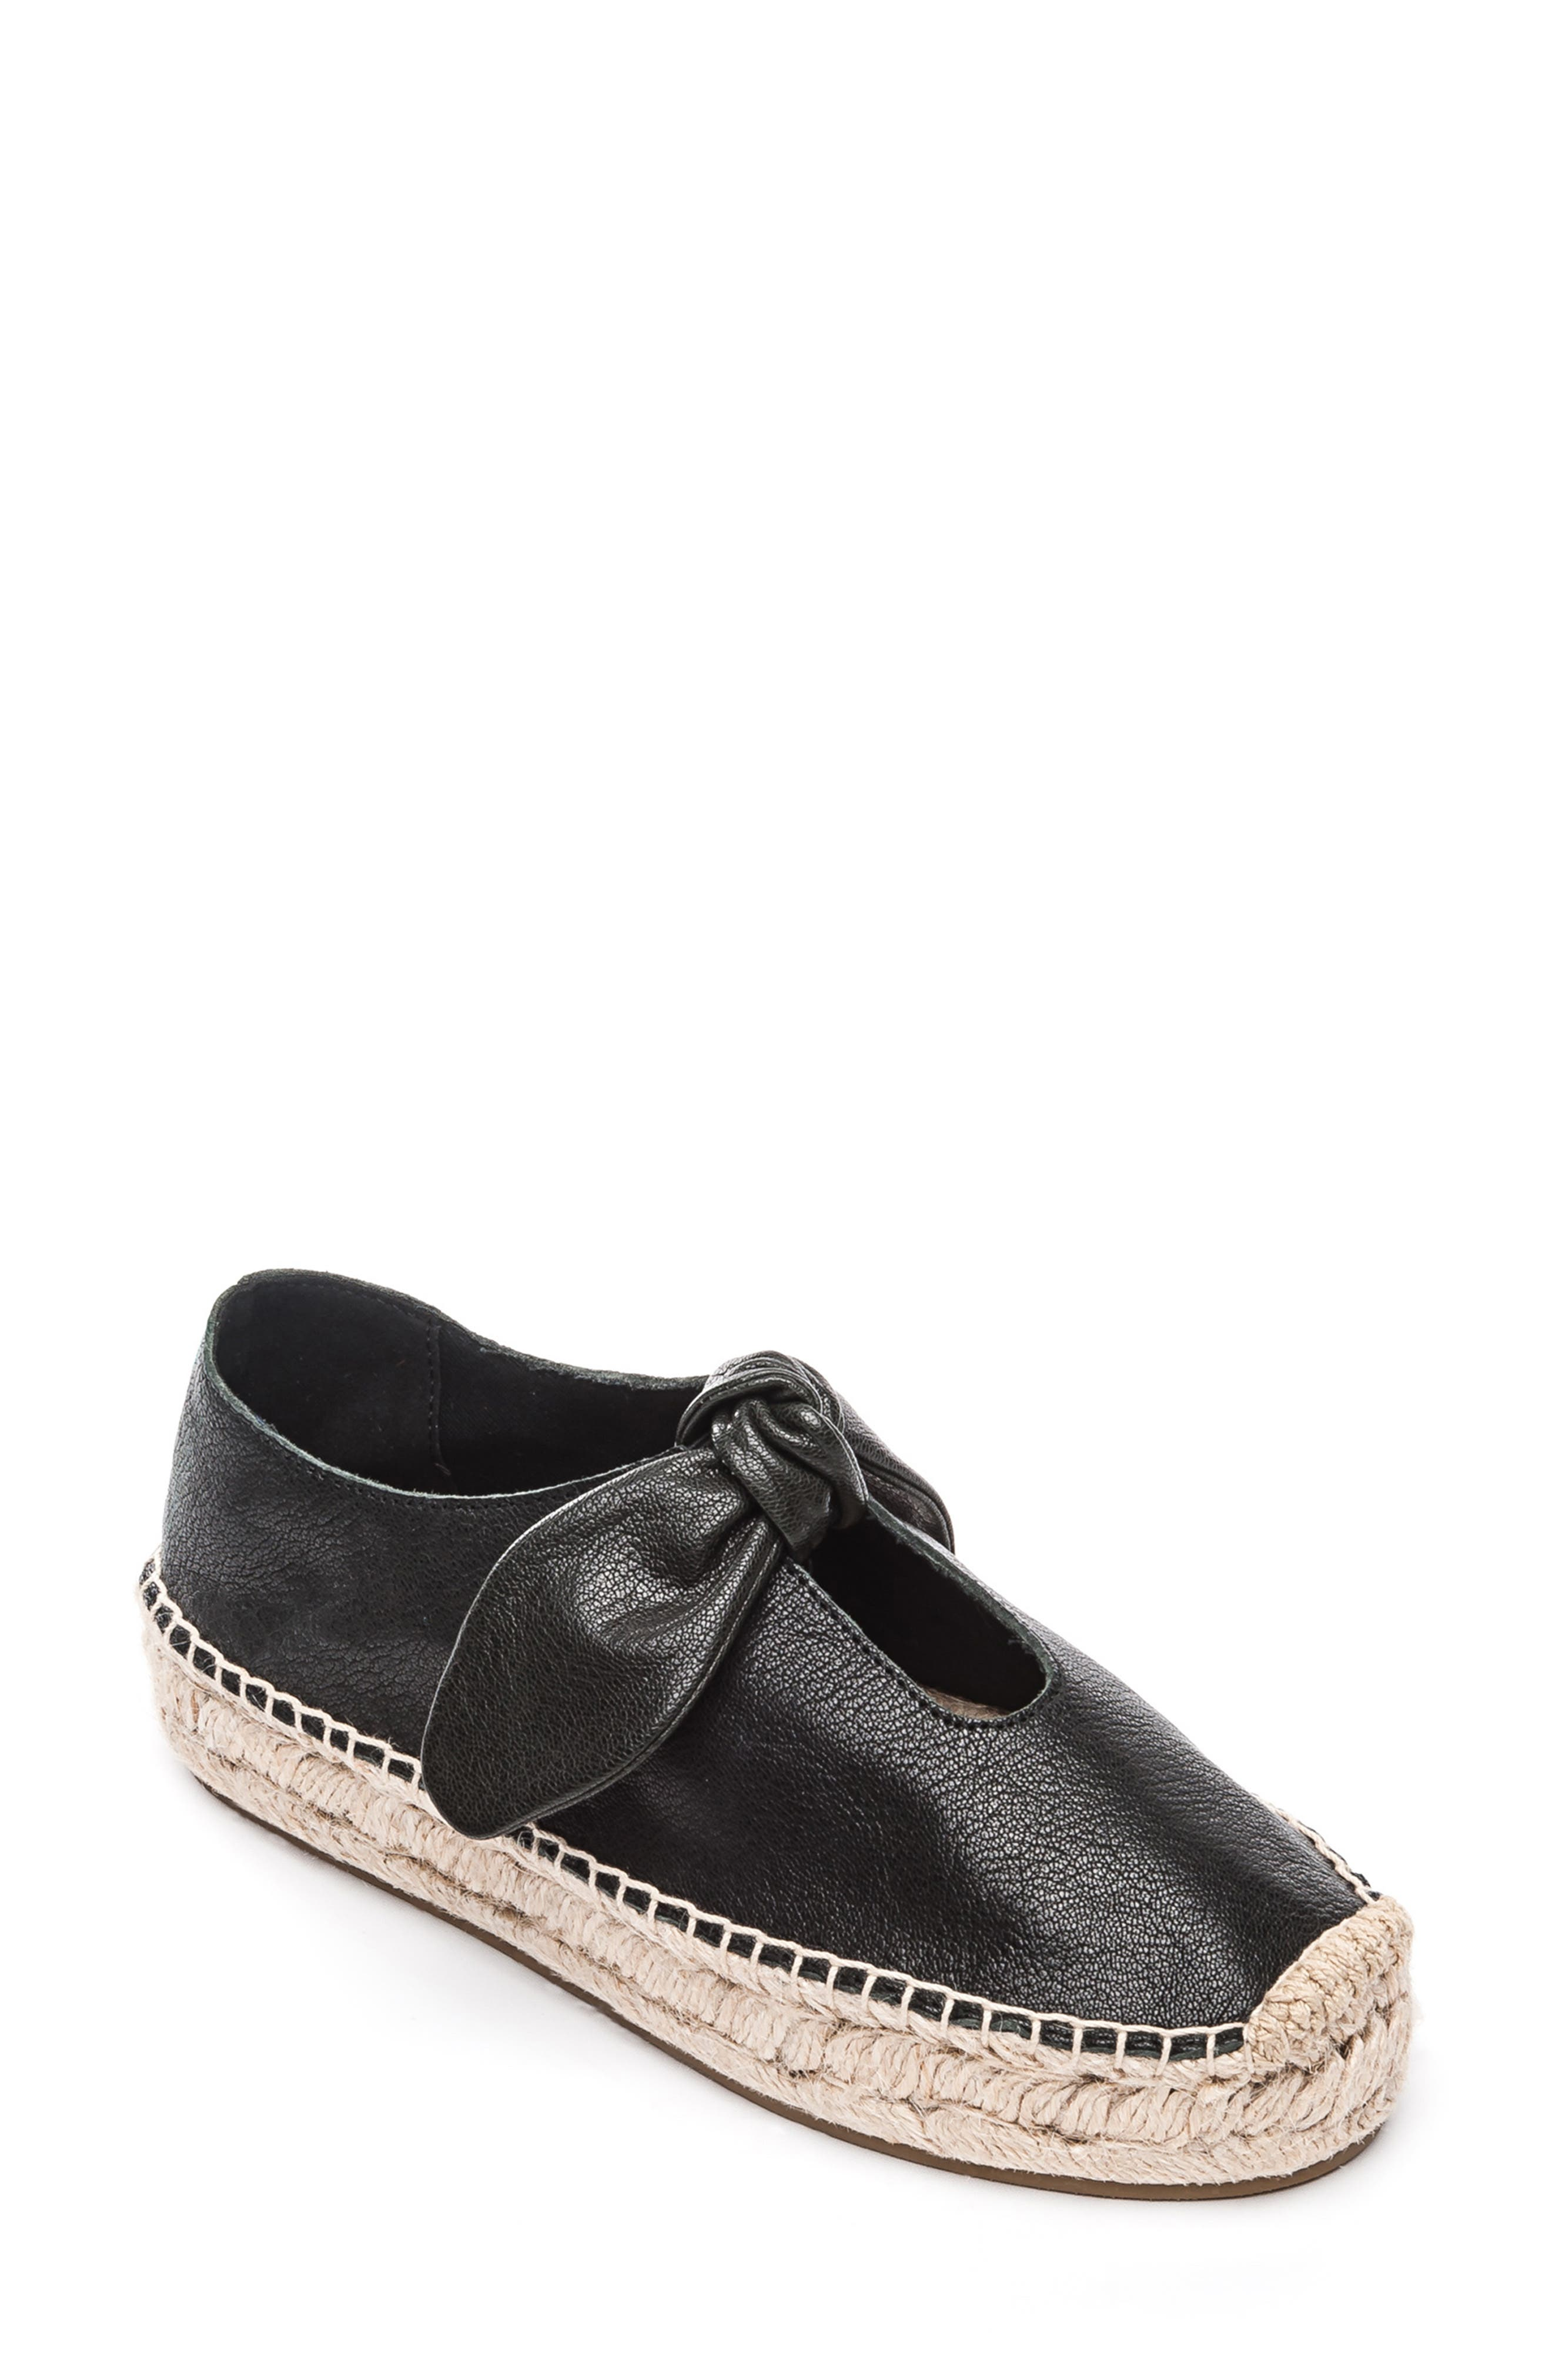 Bernardo Bow Espadrille Slip-On, Black